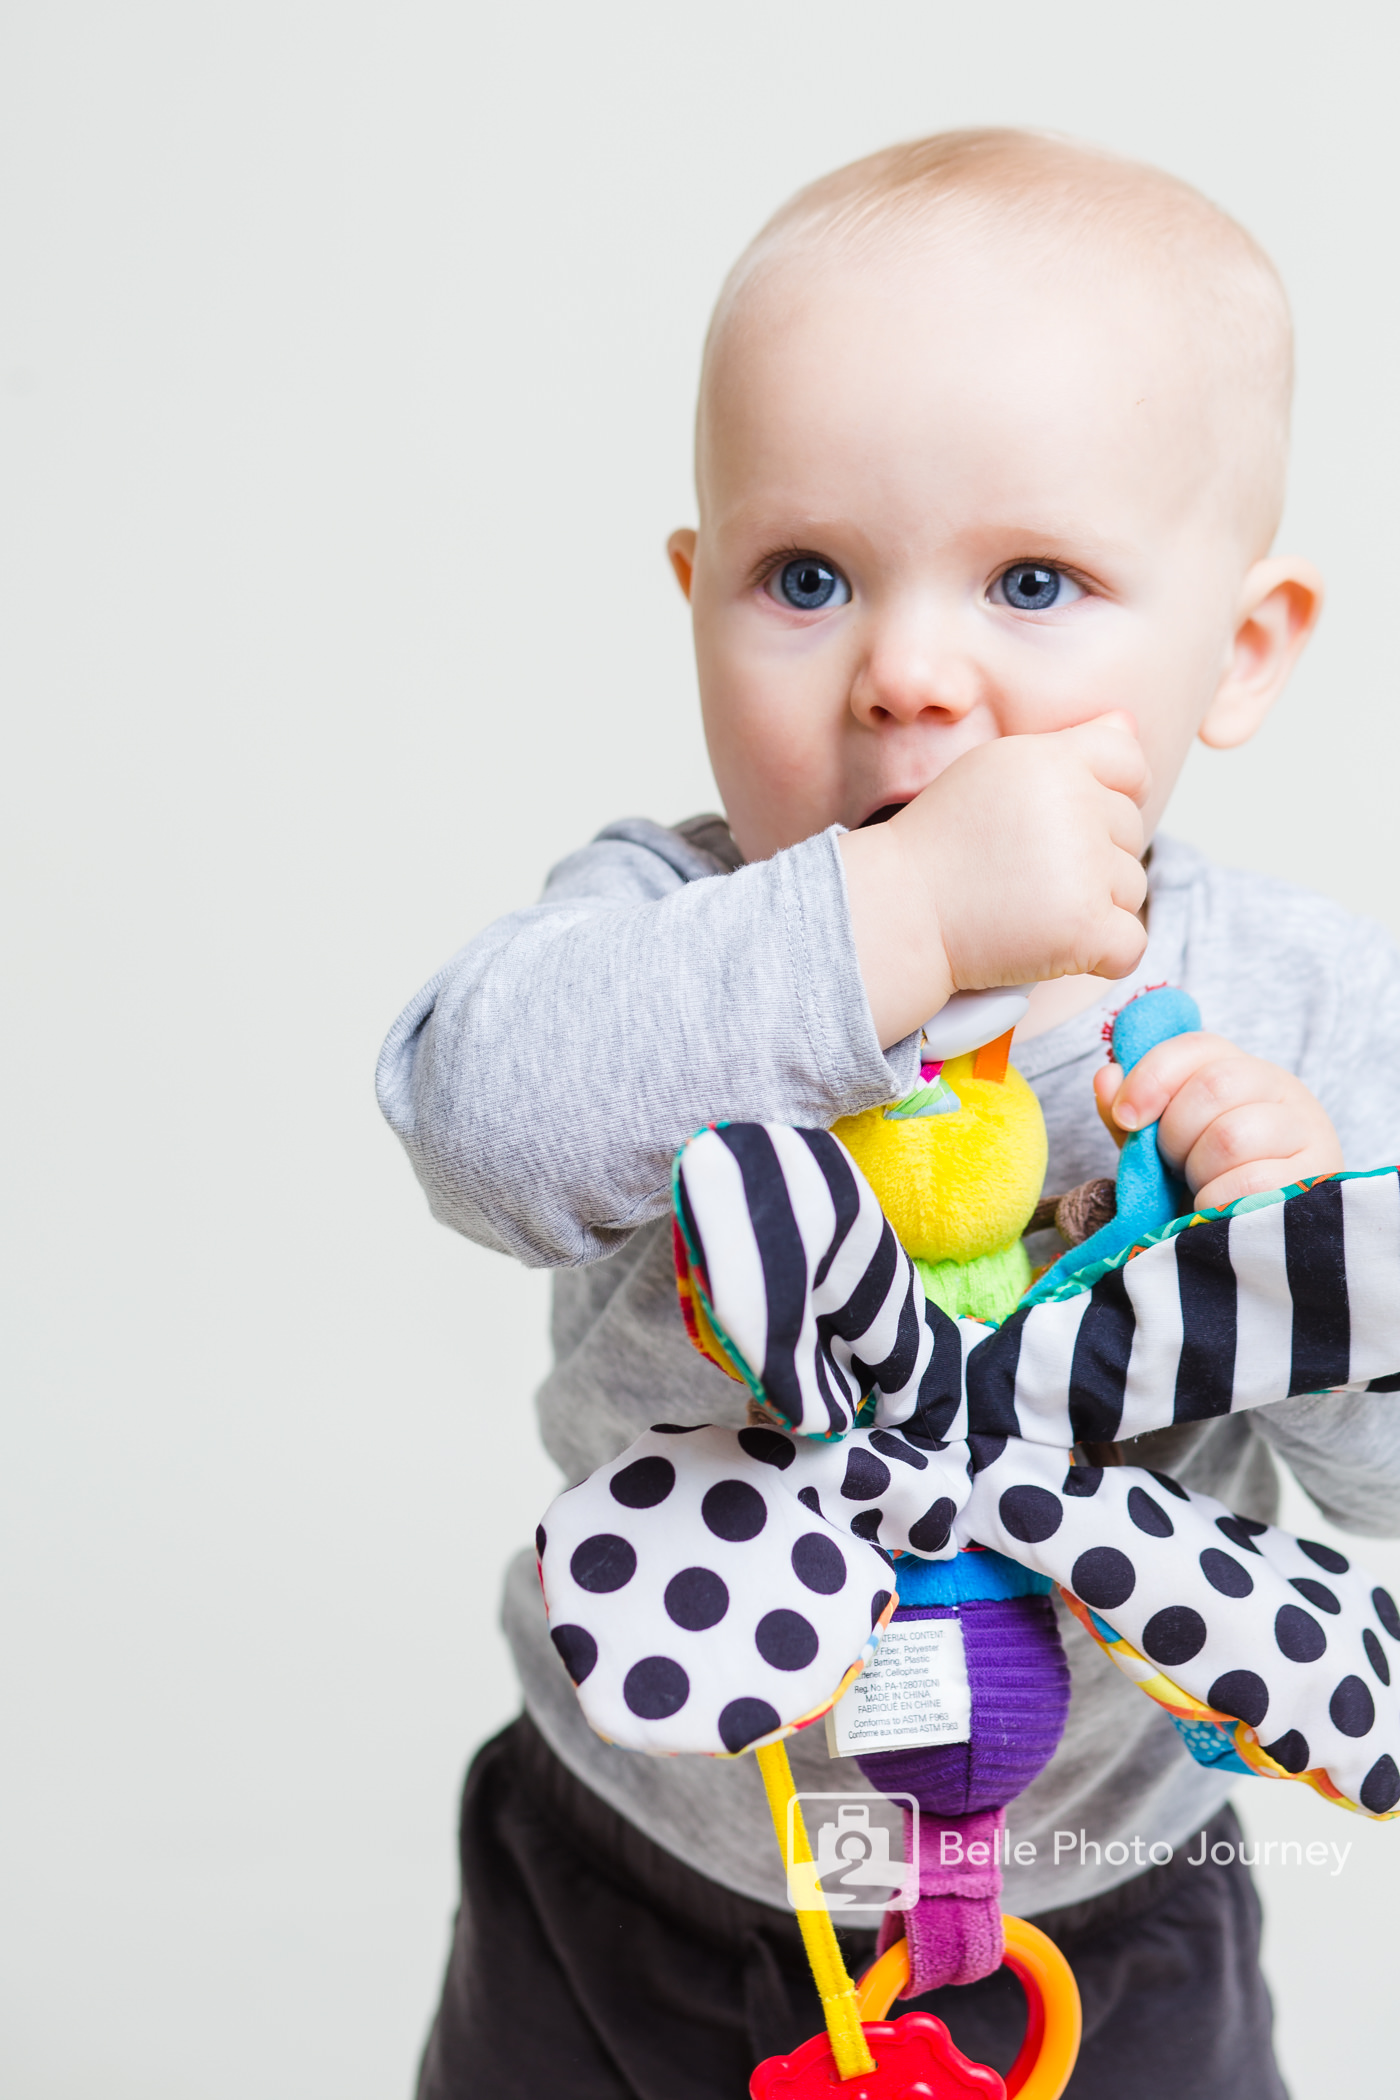 baby toddler chewing biting toy